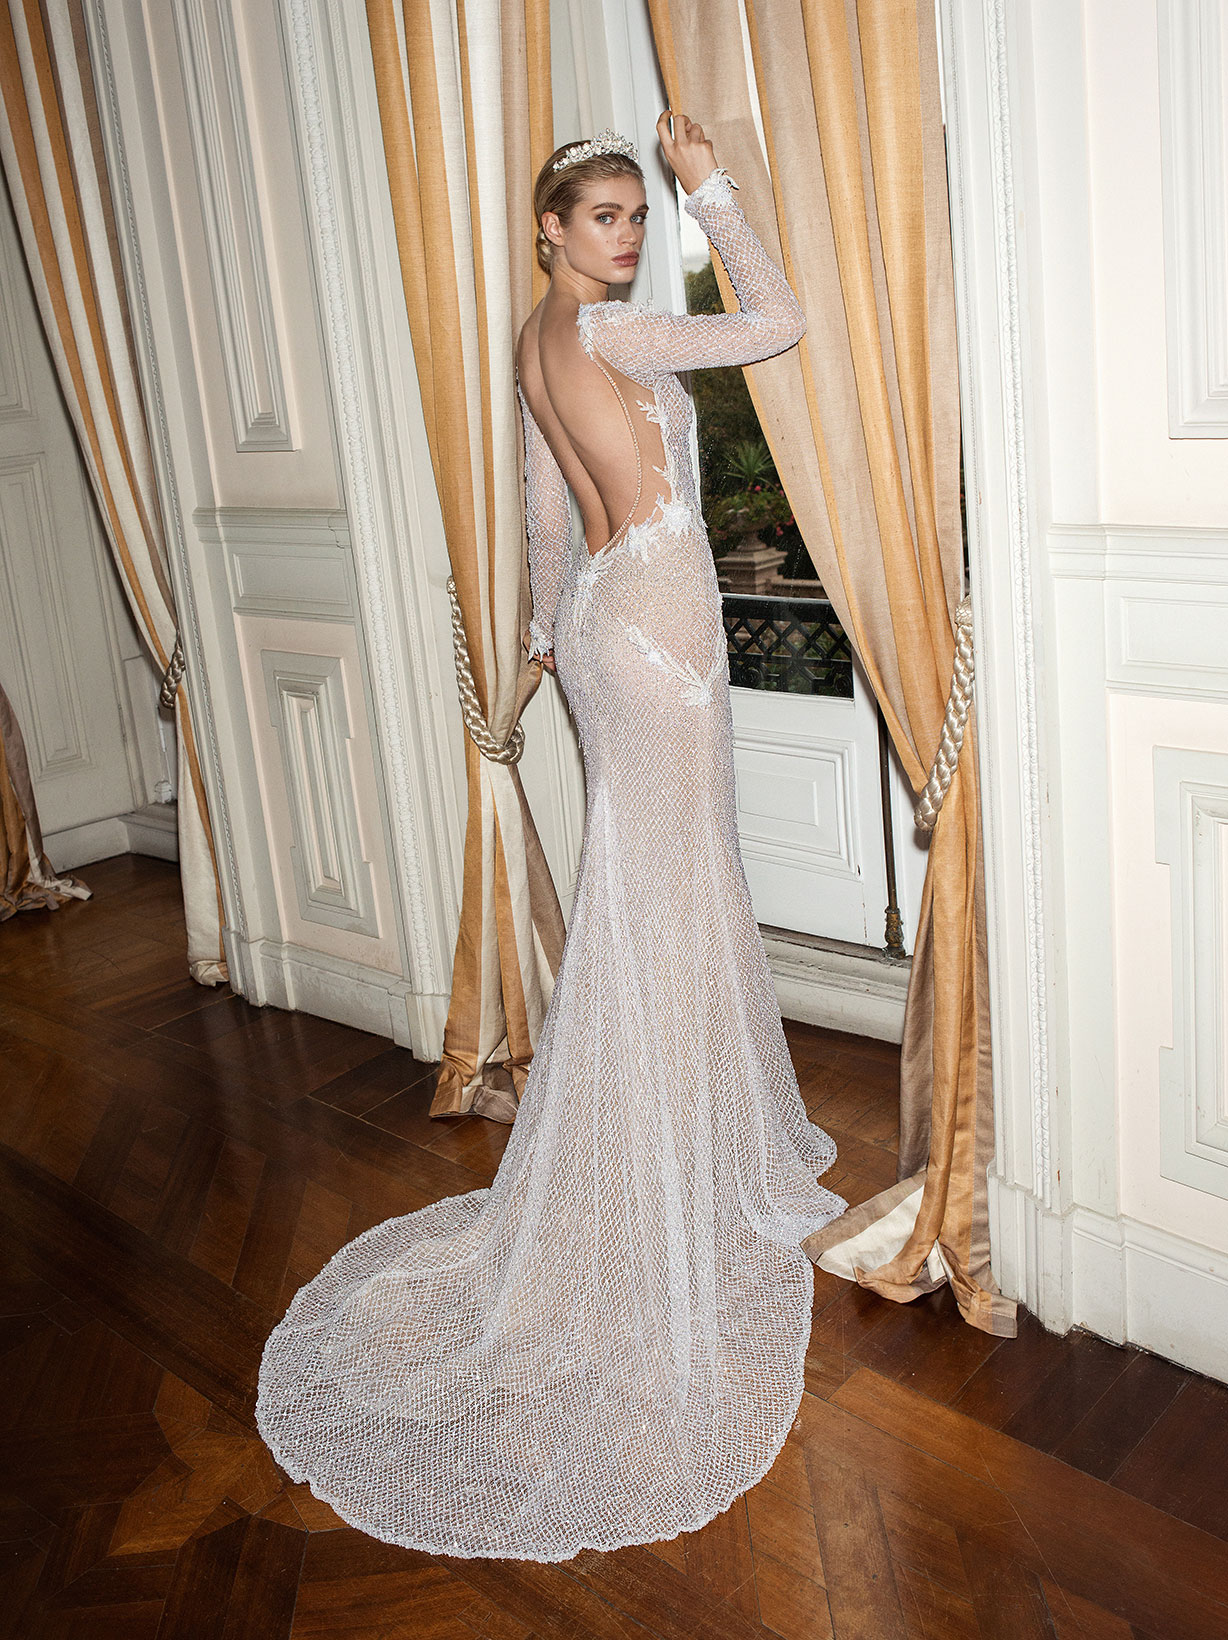 Galia Lahav alegria collection estelle wedding dress beaded flower accents low back